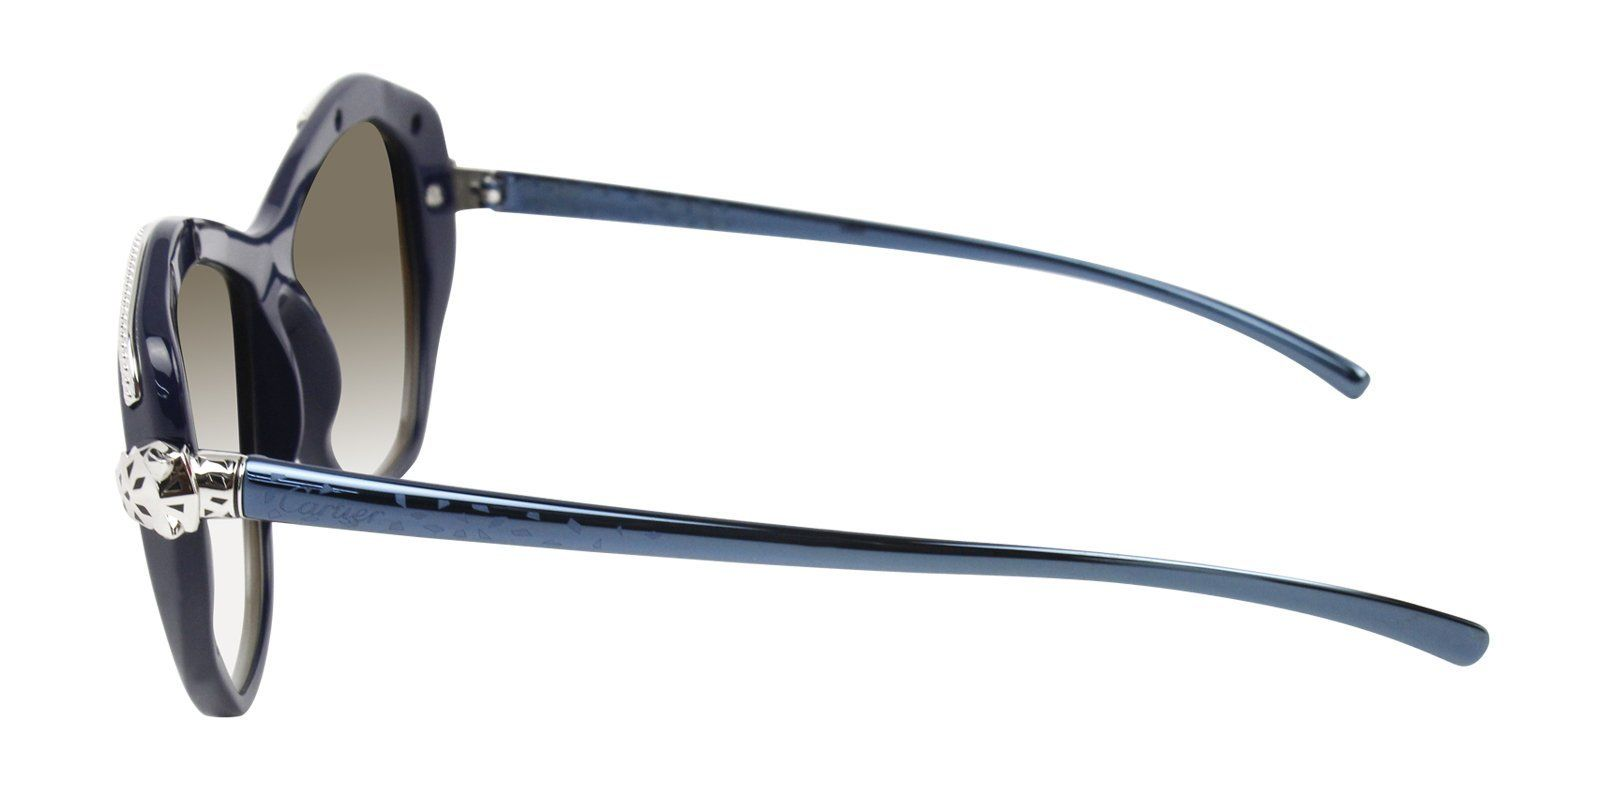 411fe70d76cf Cartier - Panthere Wild T8201075. Cartier - Panthere Wild T8201075  sunglasses